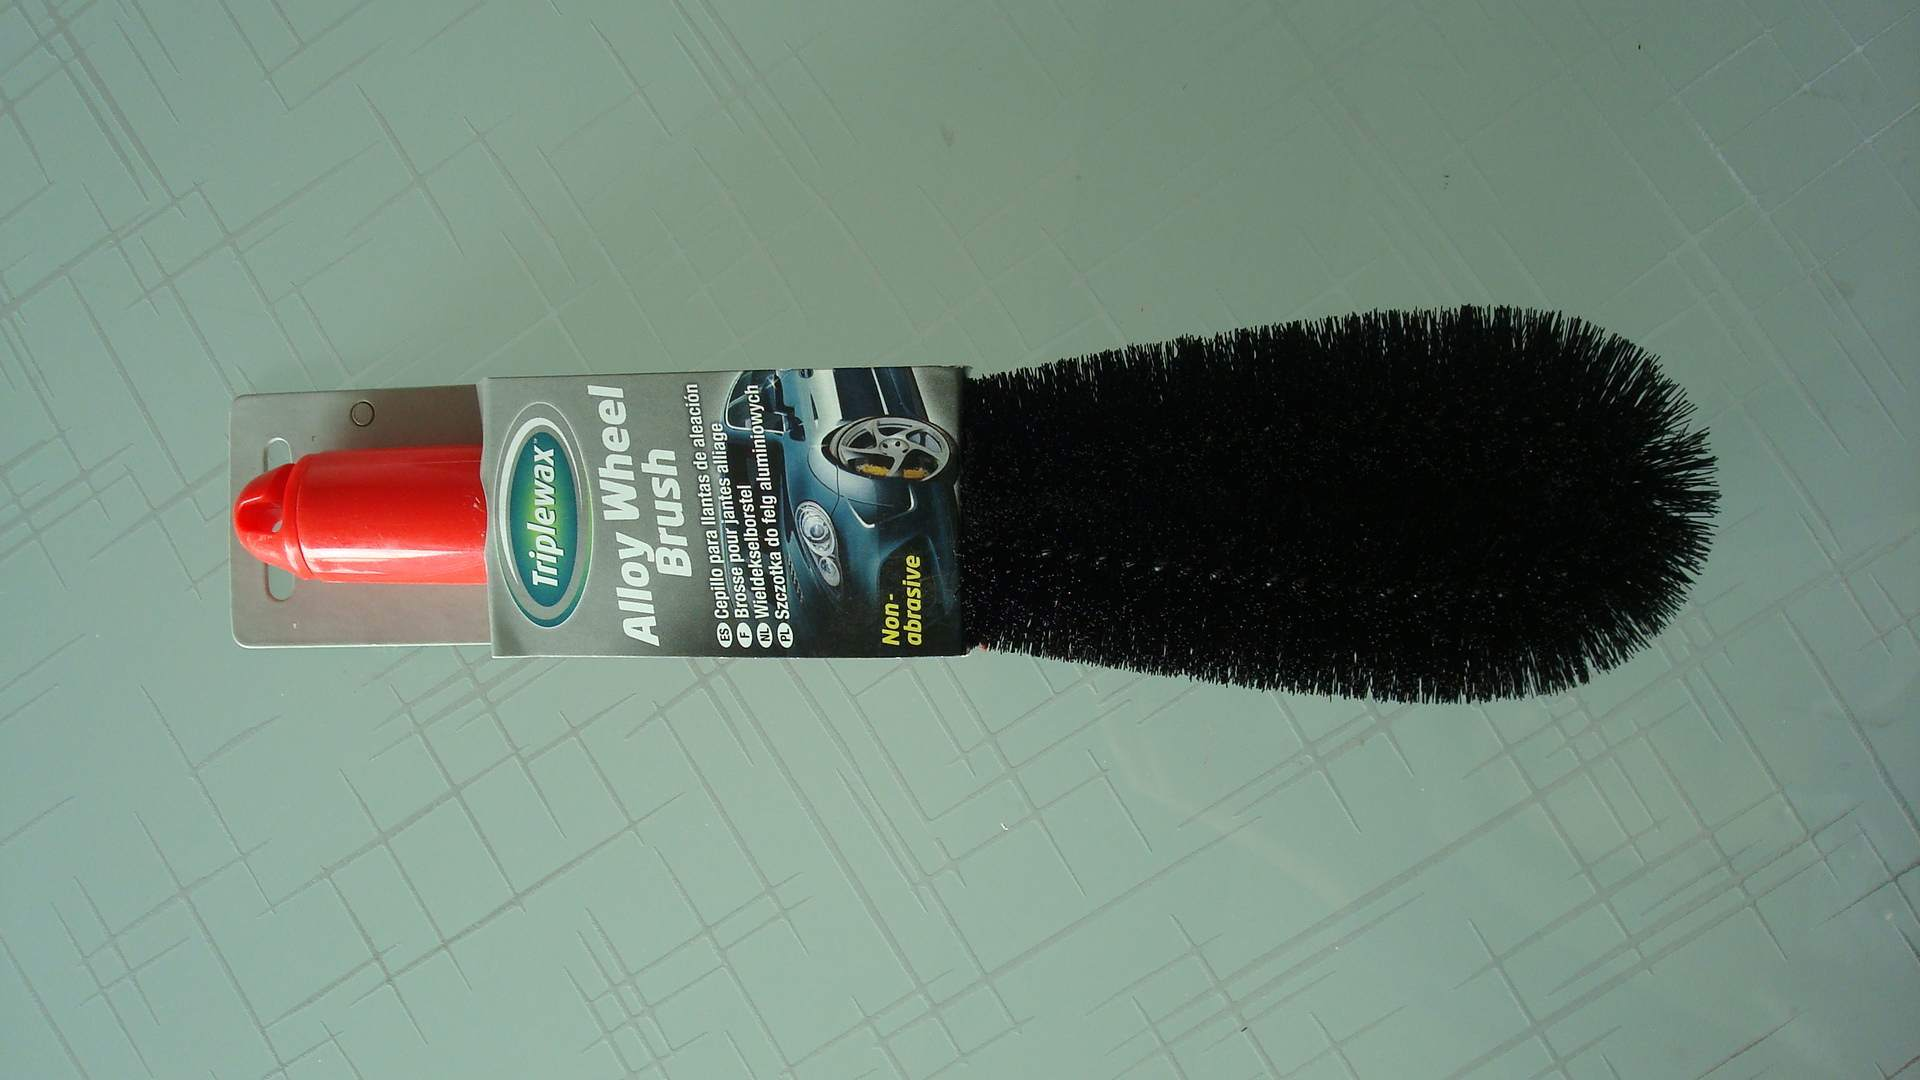 Wheel Brush, Cleaning Brush, Cleaning Tool